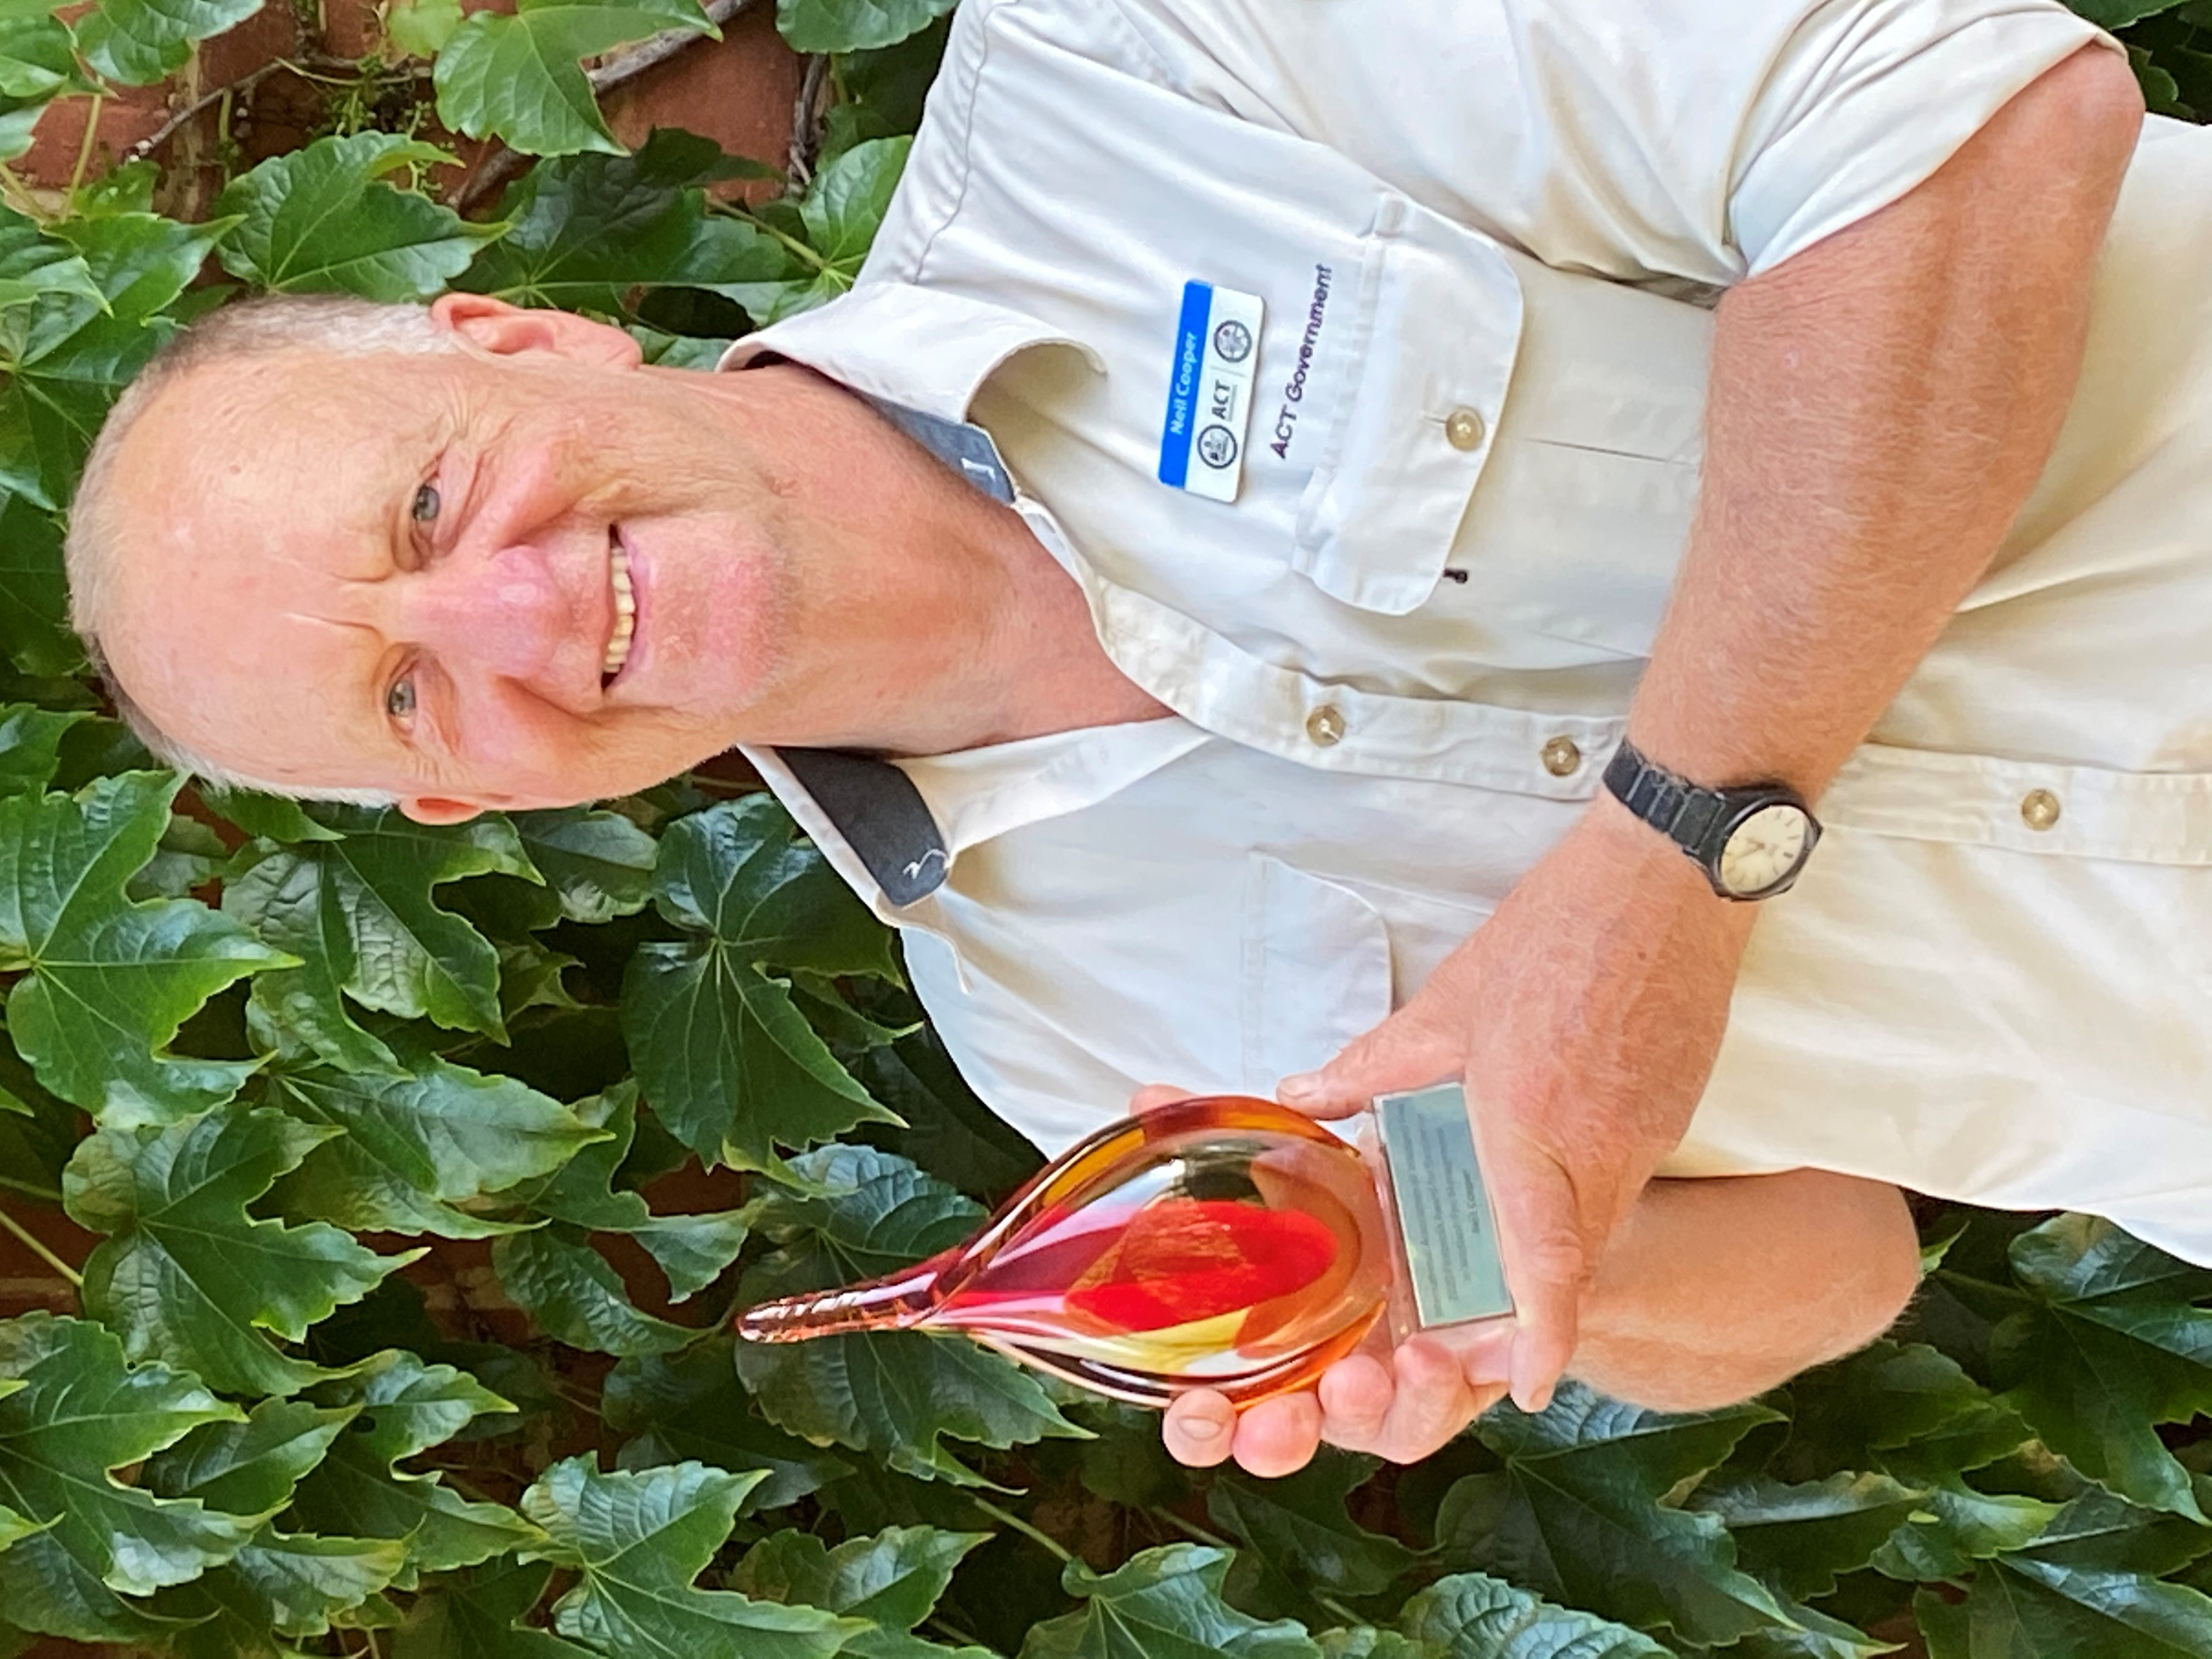 Neil Cooper (ACT Parks and Conservation Service) with his Firebreak Award for Excellence in Wildland Fire Management